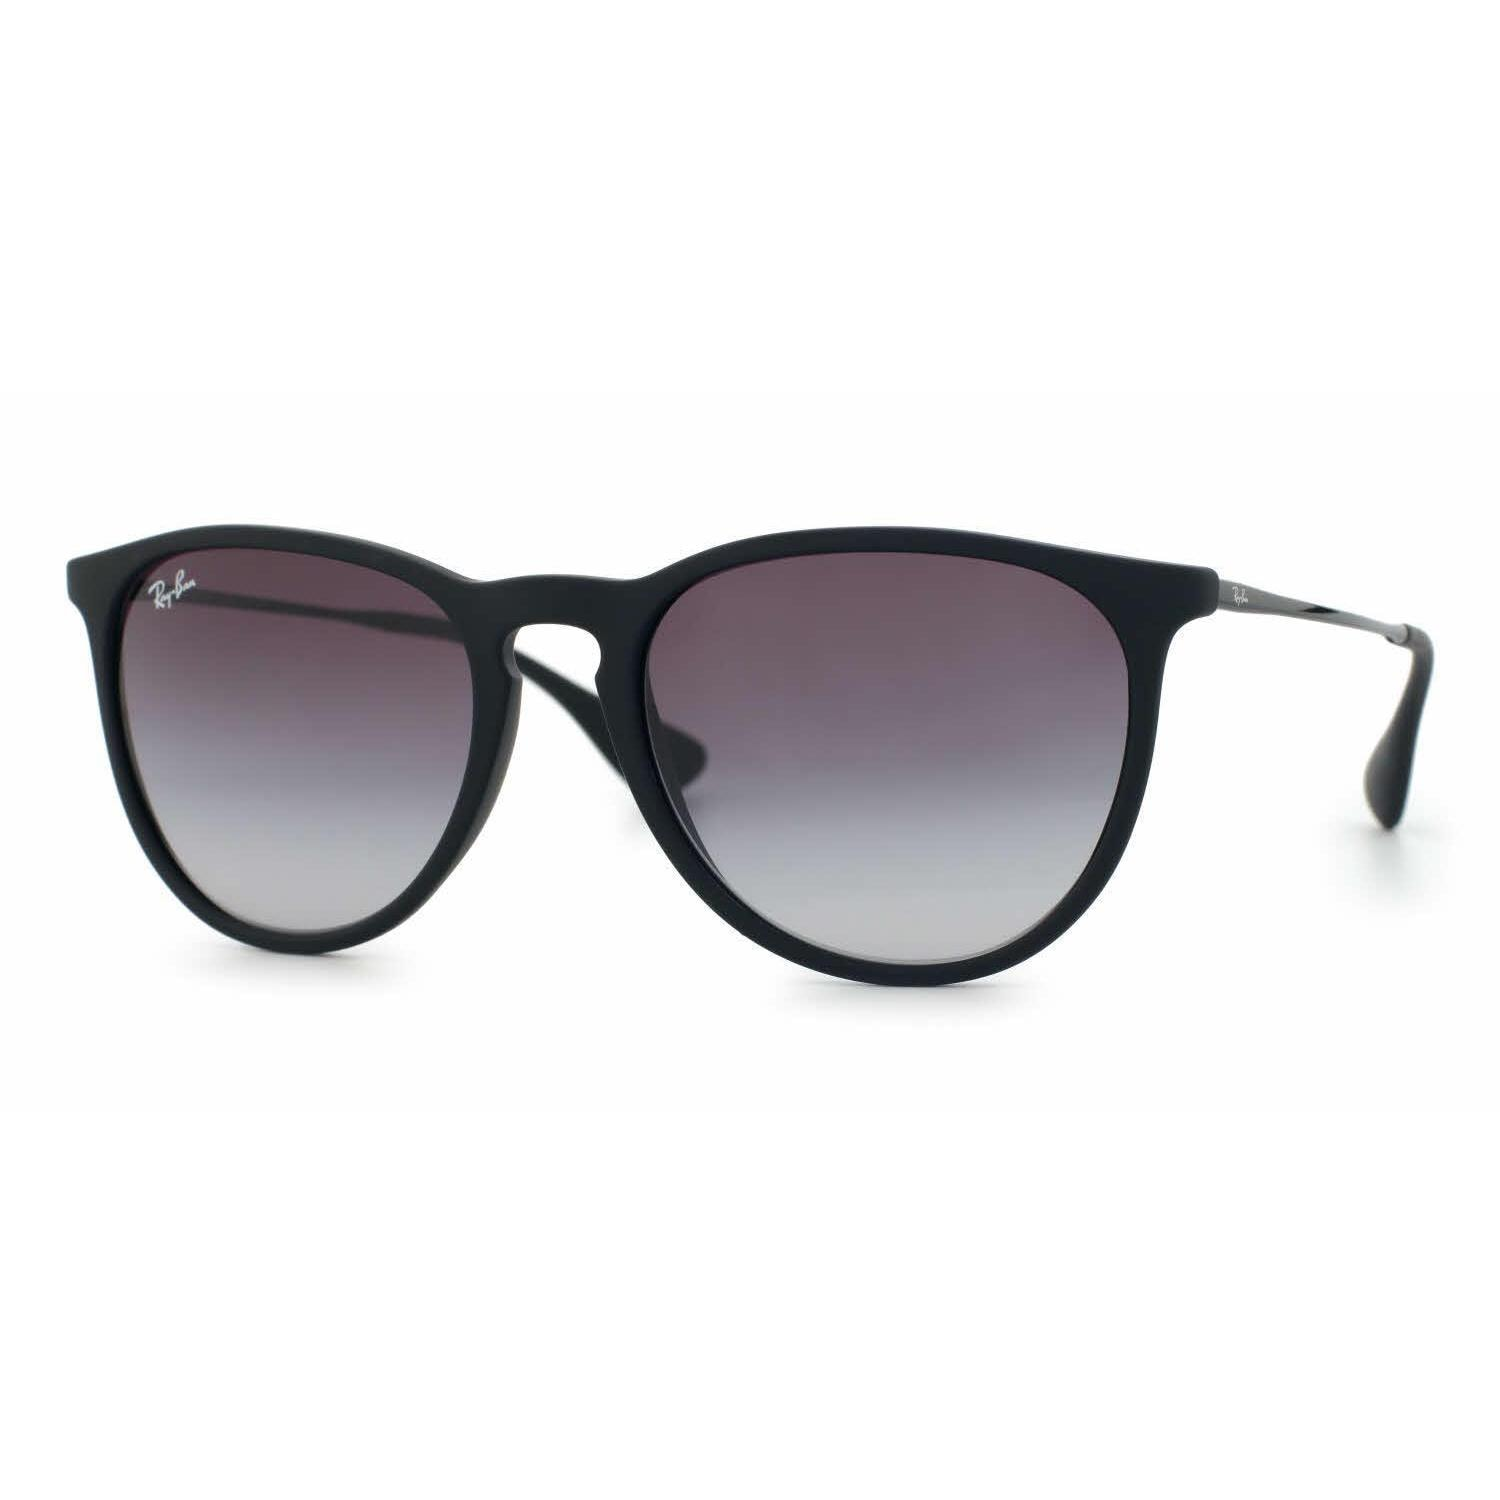 8fdbd334b8 Ray-Ban Erika Classic RB 4171 Women s Black Frame Grey Gradient Lens  Sunglasses